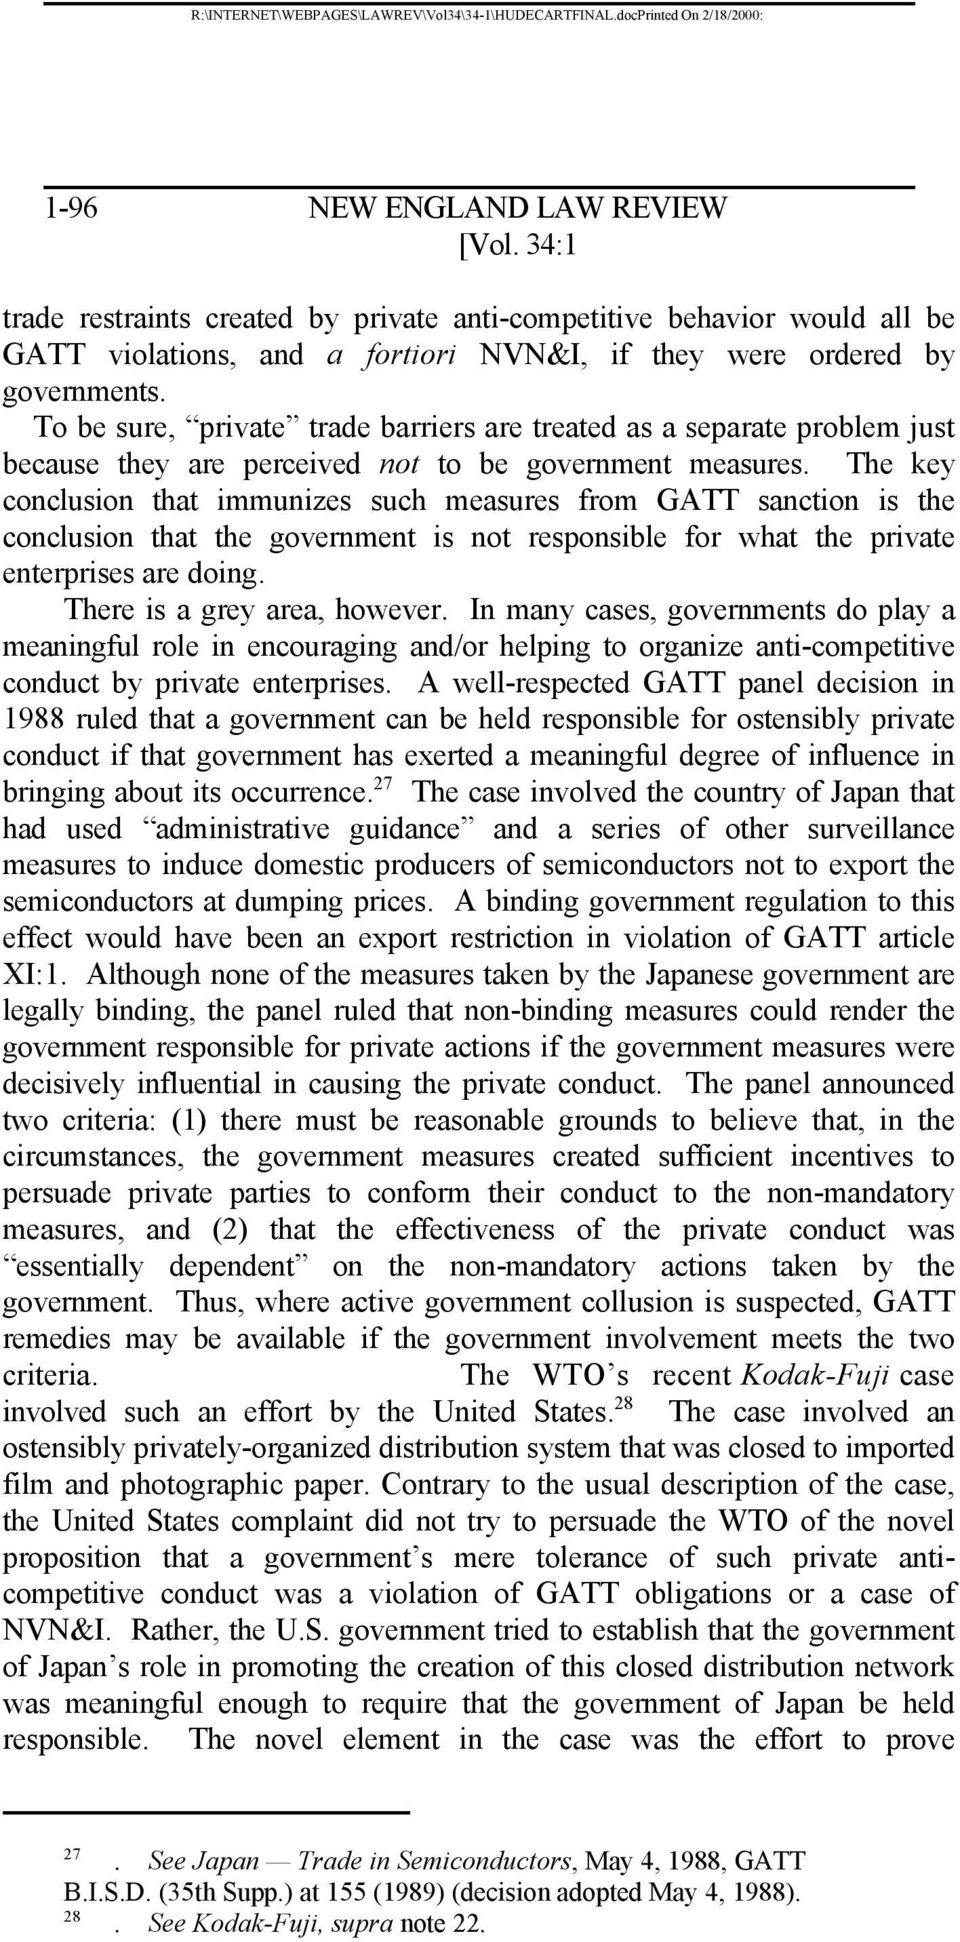 The key conclusion that immunizes such measures from GATT sanction is the conclusion that the government is not responsible for what the private enterprises are doing. There is a grey area, however.